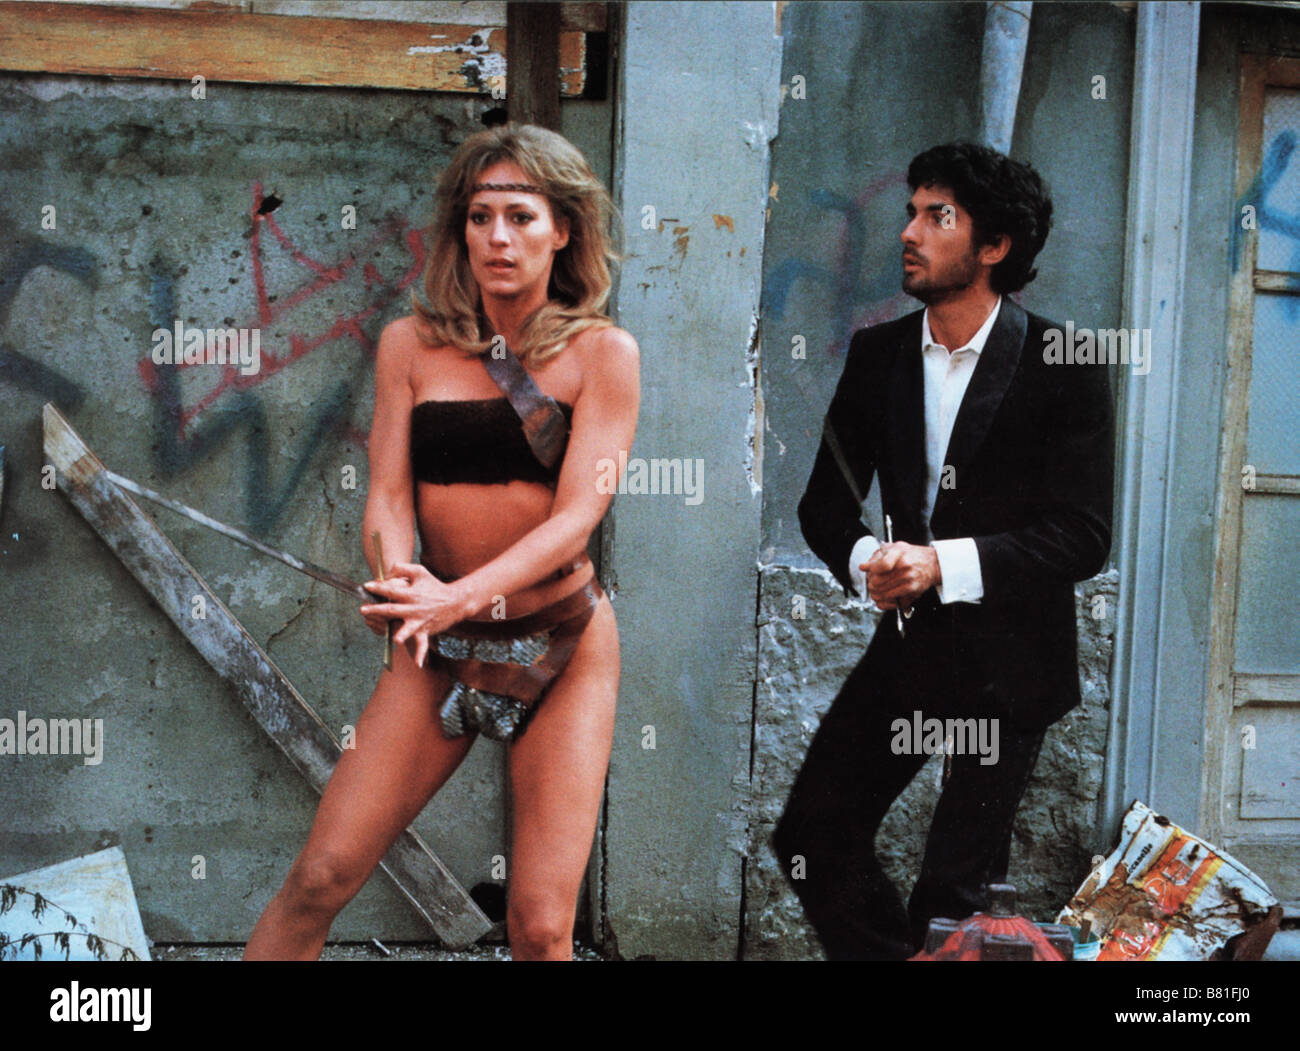 She Year: 1982 - She Year: 1982 - Italy / USA / Israel Sandahl Bergman,  David Goss Director: Avi Nesher